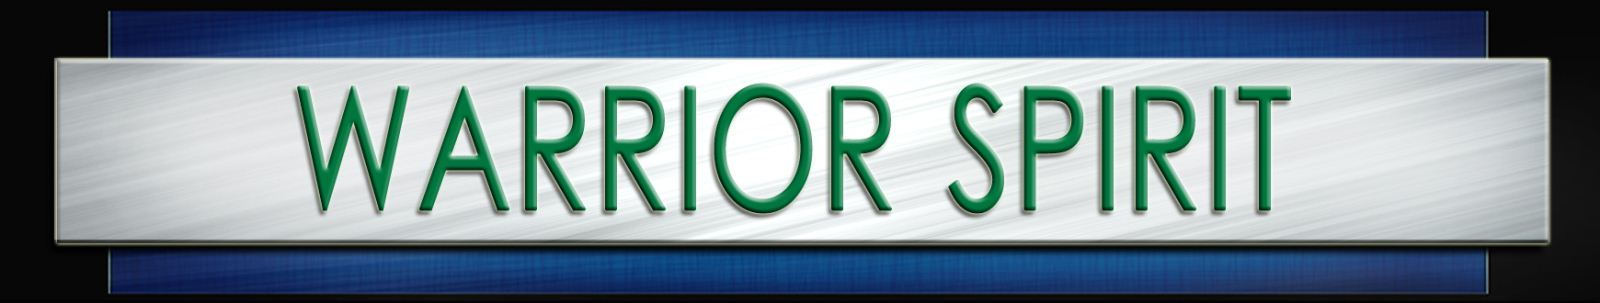 warrior spirit header